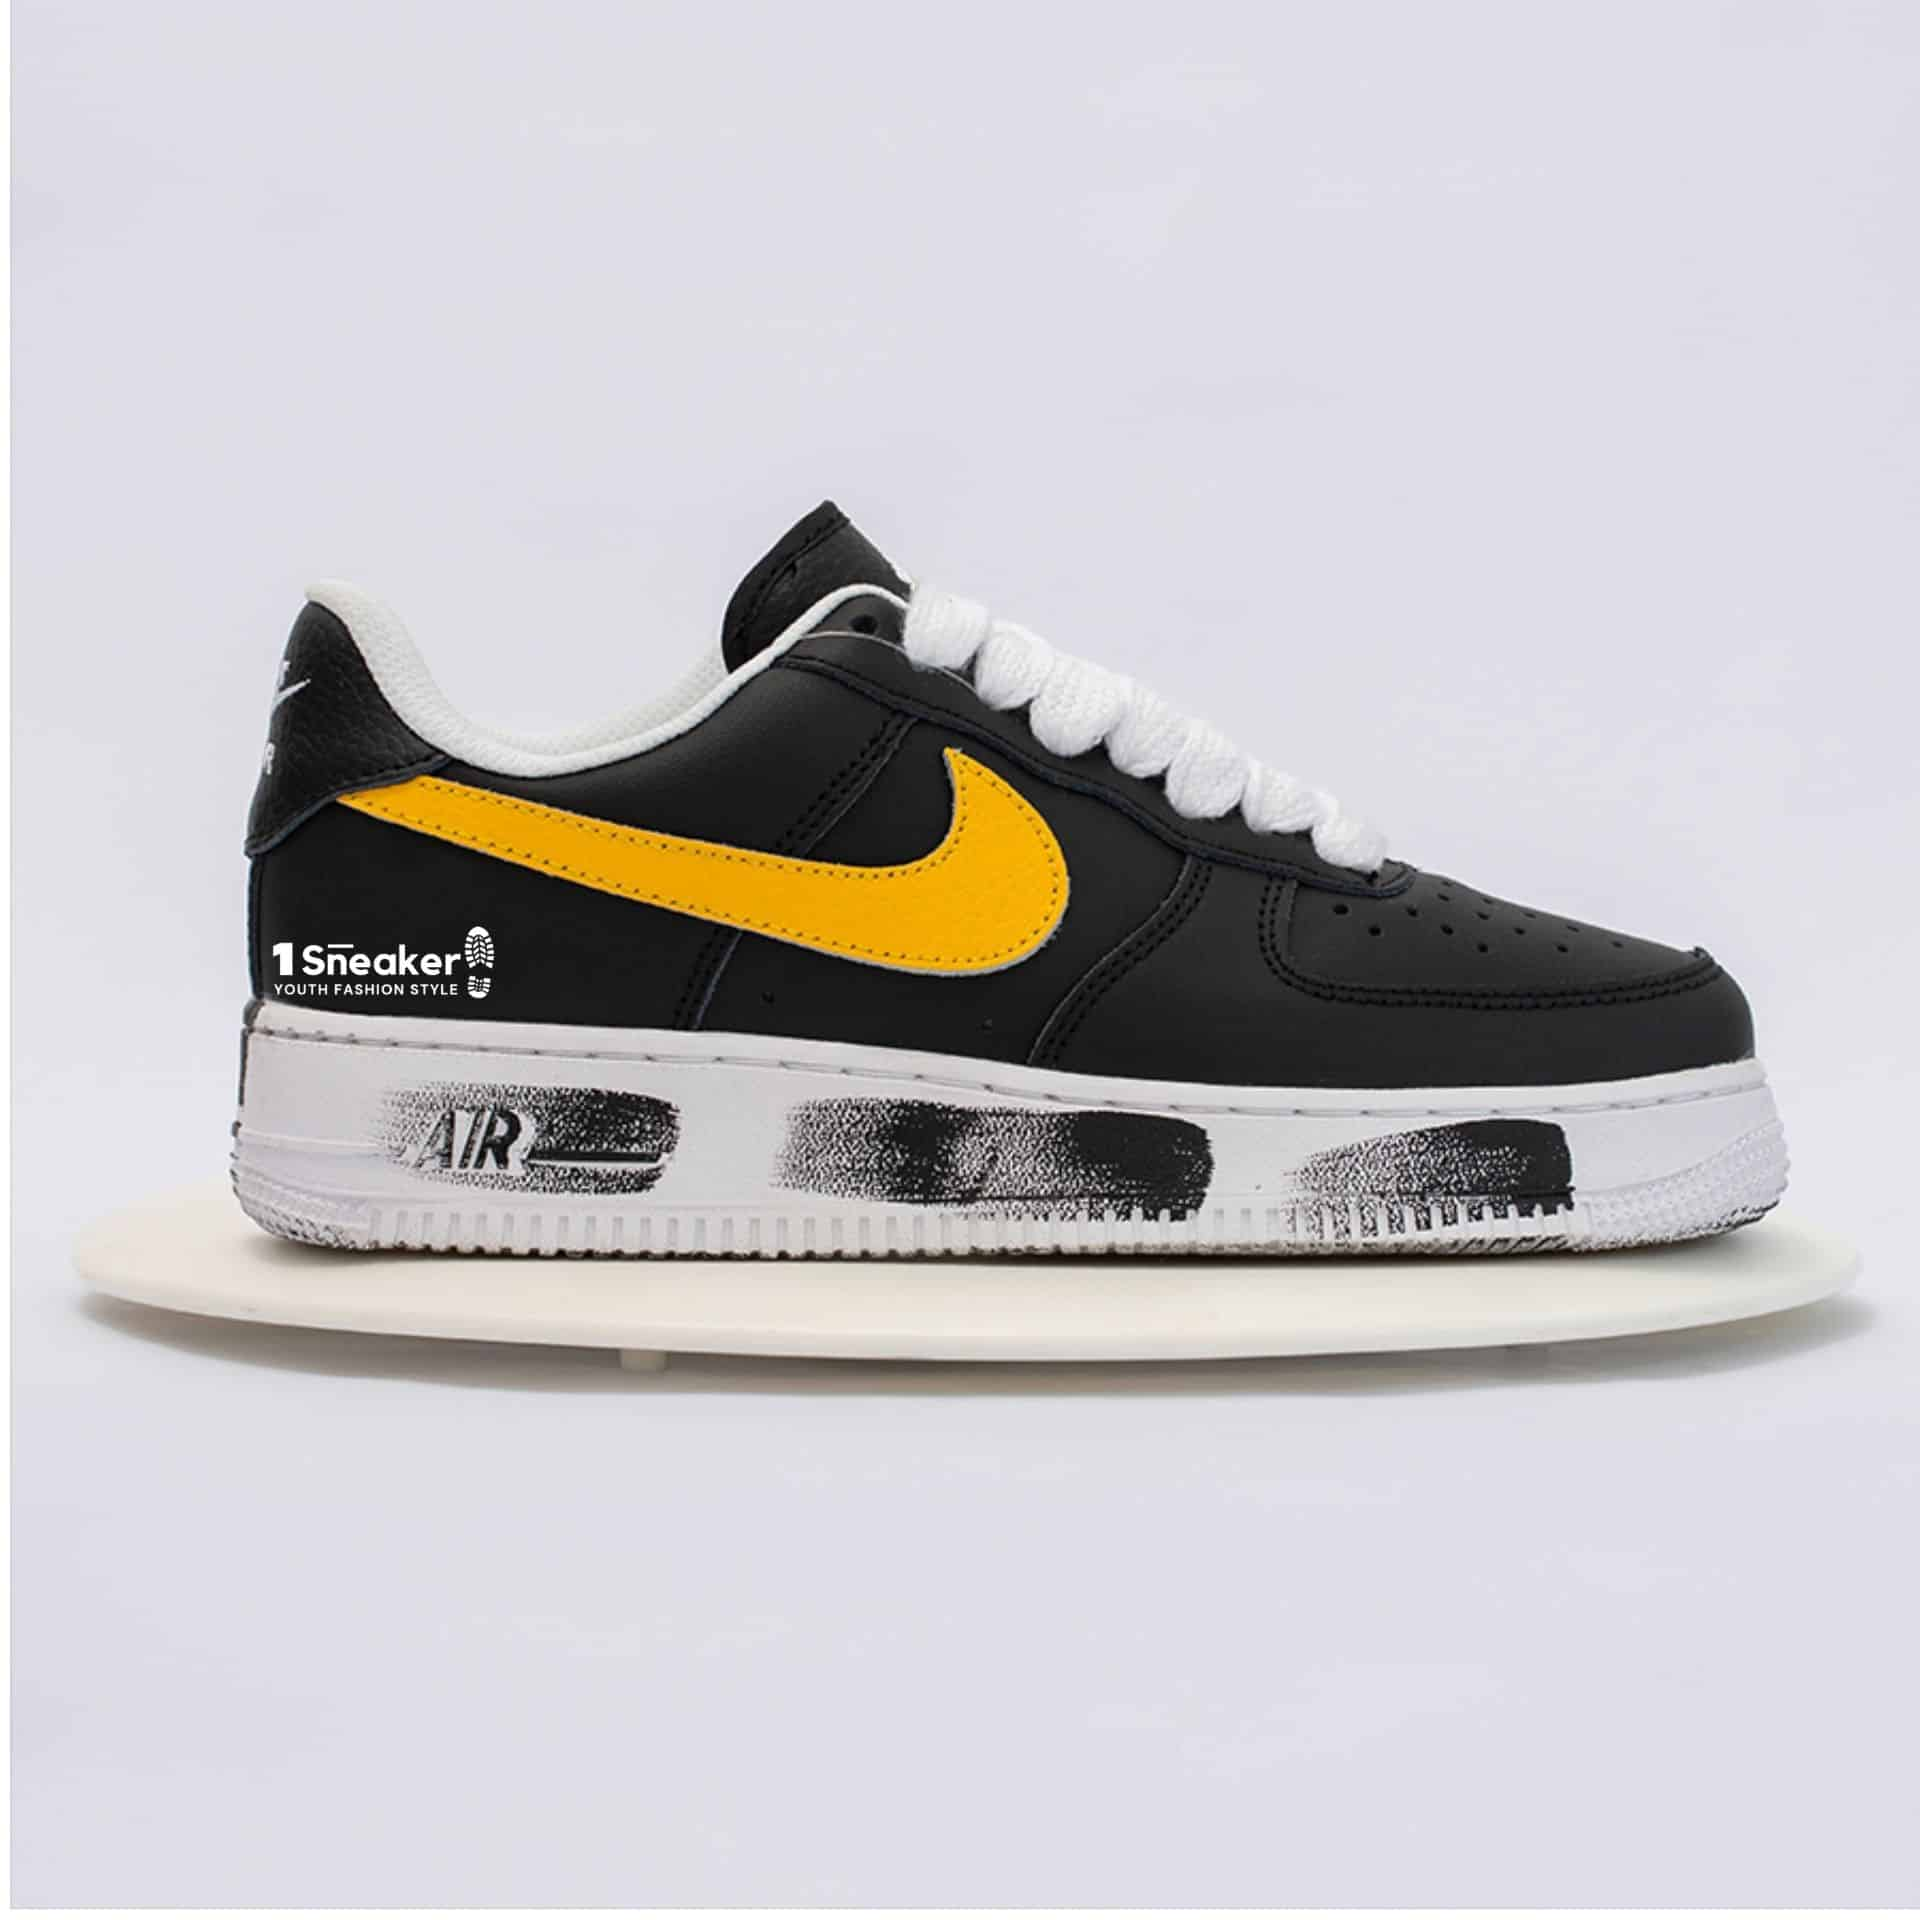 Air Force 1 Low G Dragon Peaceminusone Para Noise Yellow Swoosh Limited